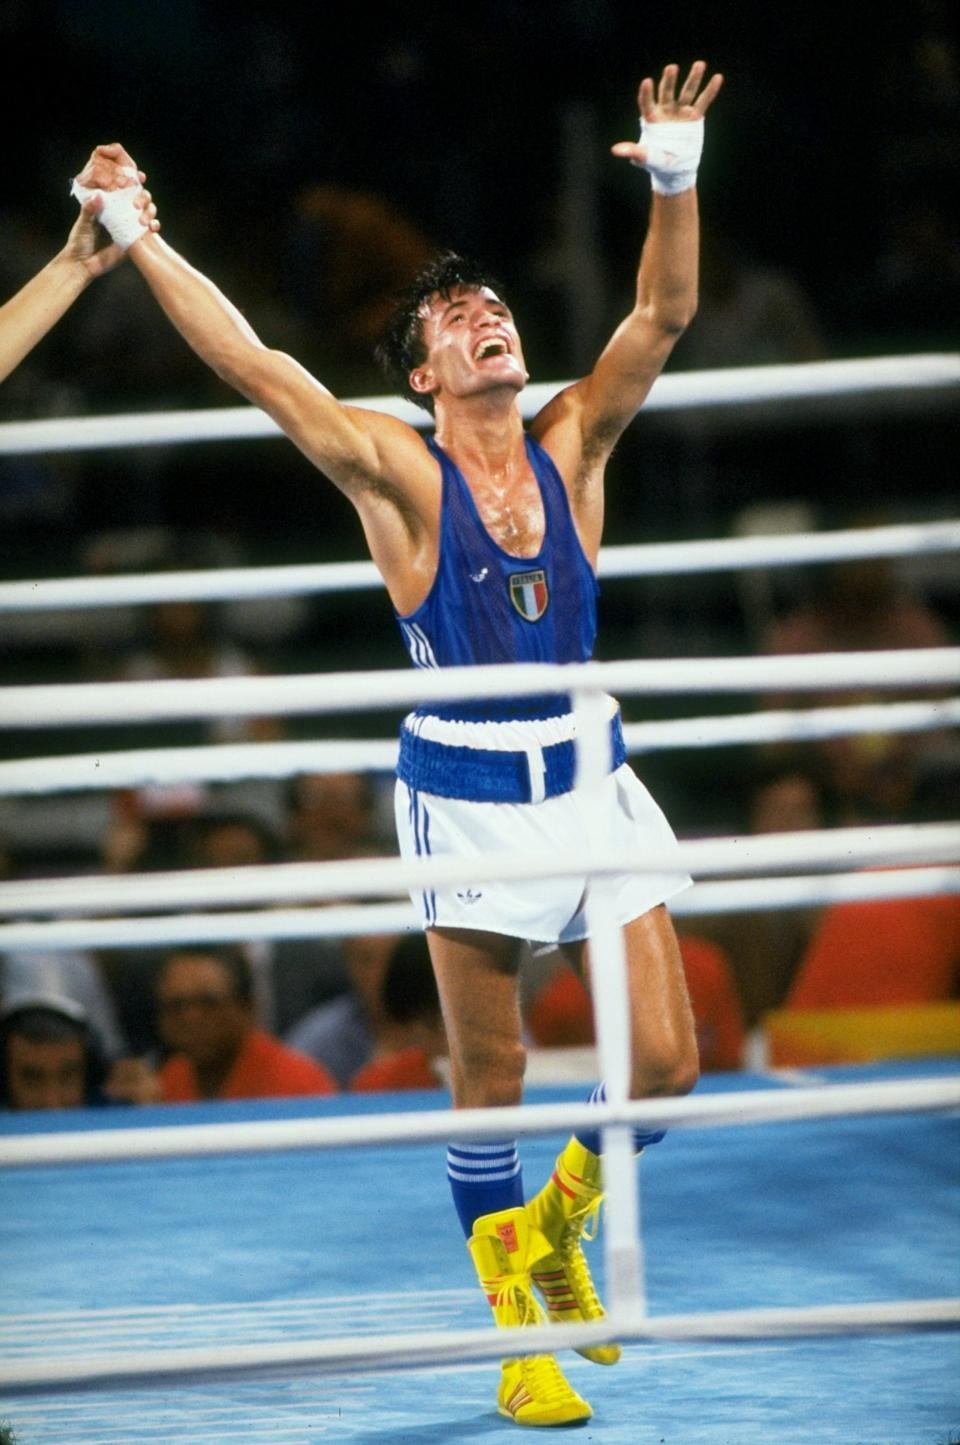 1984: Maurizio Stecca of Italy celebrates after winning the gold medal in the Bantamweight event during the 1984 Olympic Games in Los Angeles, California, USA. \ Mandatory Credit: Allsport UK /Allsport